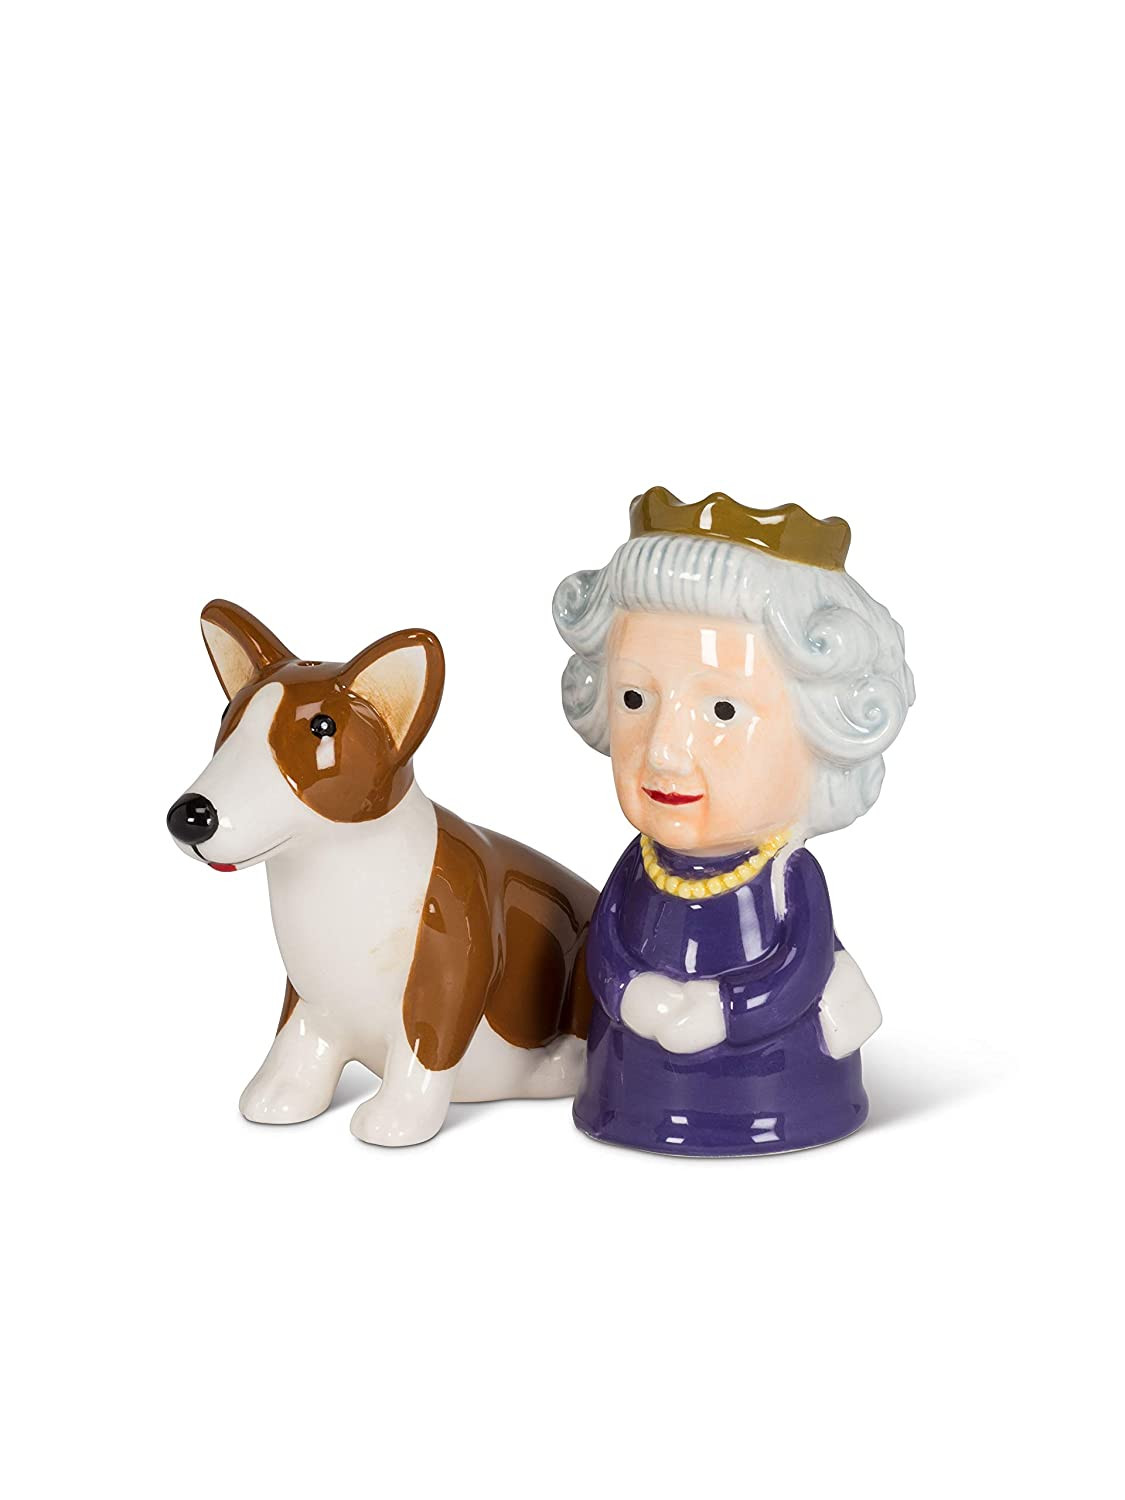 Abbott Collection 27-KITSCH-303 Queen and Corgi Salt & Pepper-3.5 H, 3.5 inches high, Multi-Color PURCHI